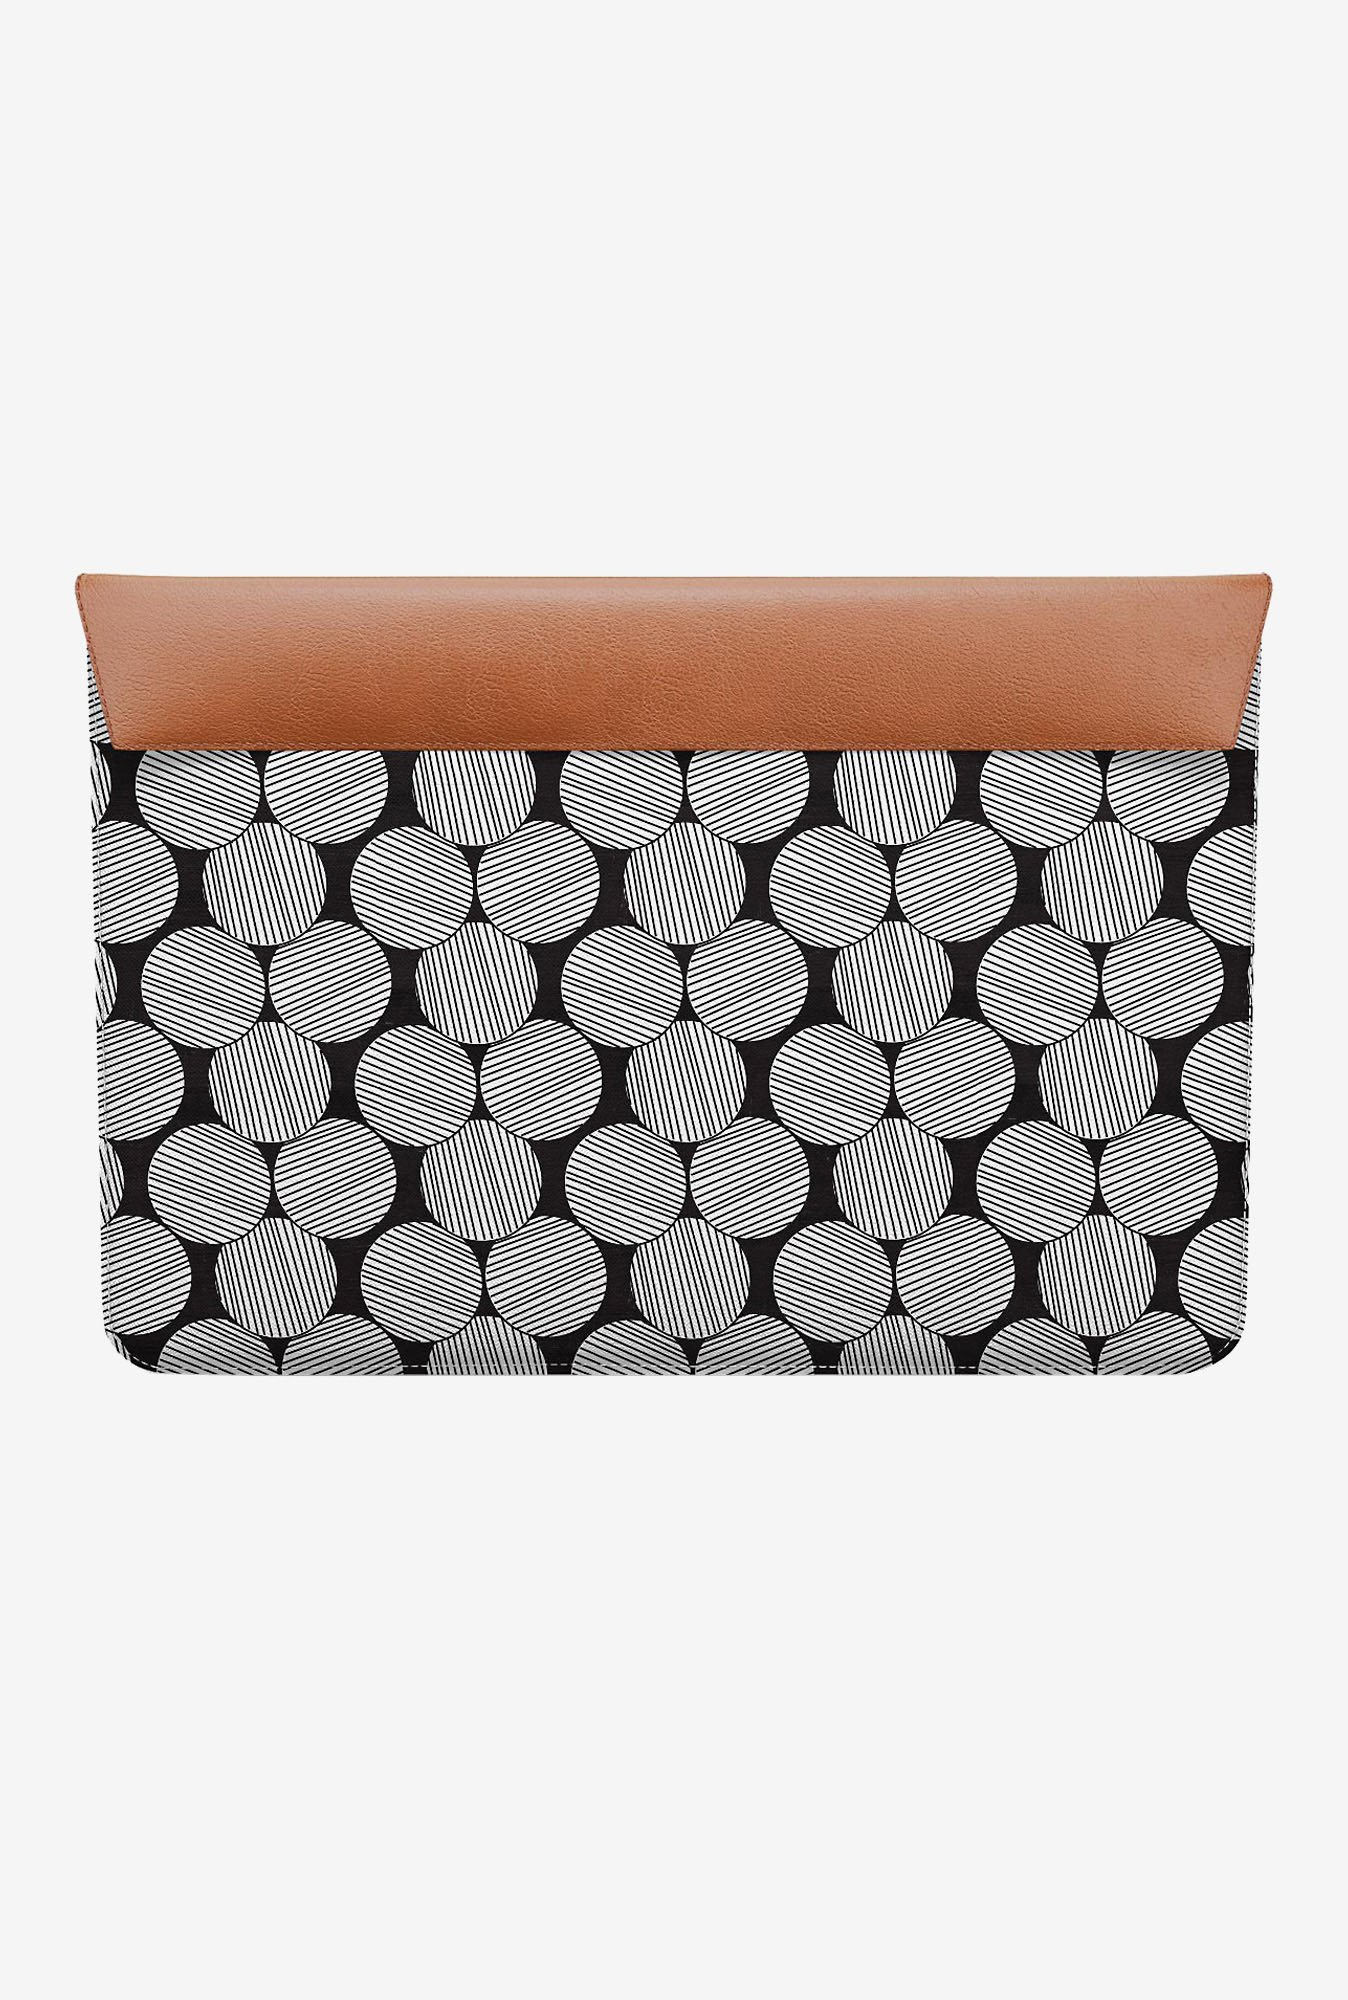 DailyObjects Lined Circles MacBook 12 Envelope Sleeve